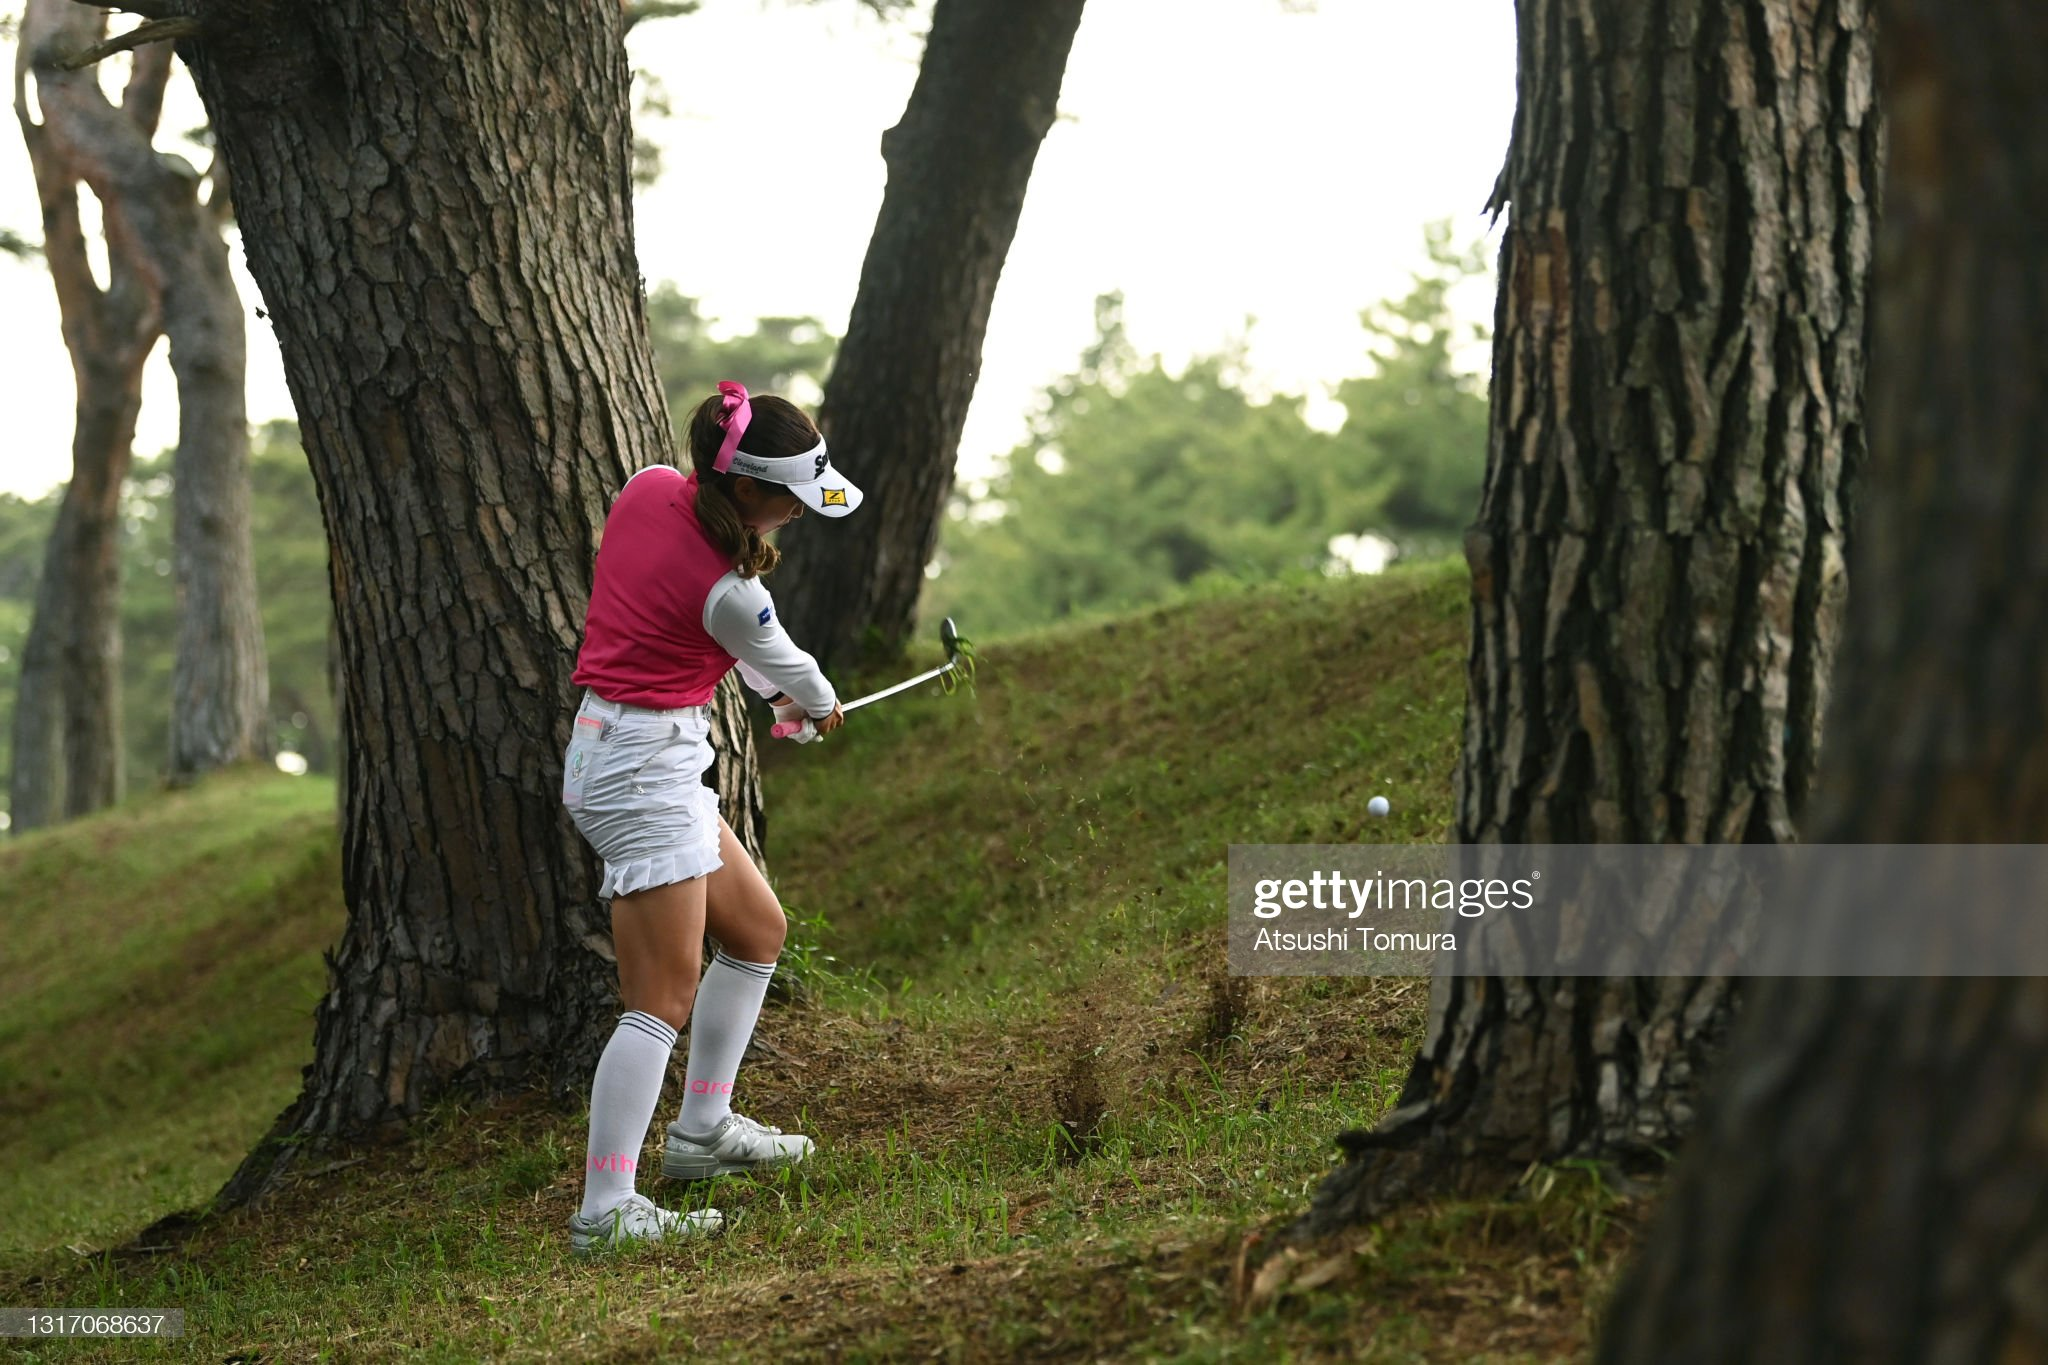 https://media.gettyimages.com/photos/reika-usui-of-japan-hits-her-second-shot-on-the-18th-hole-during-the-picture-id1317068637?s=2048x2048